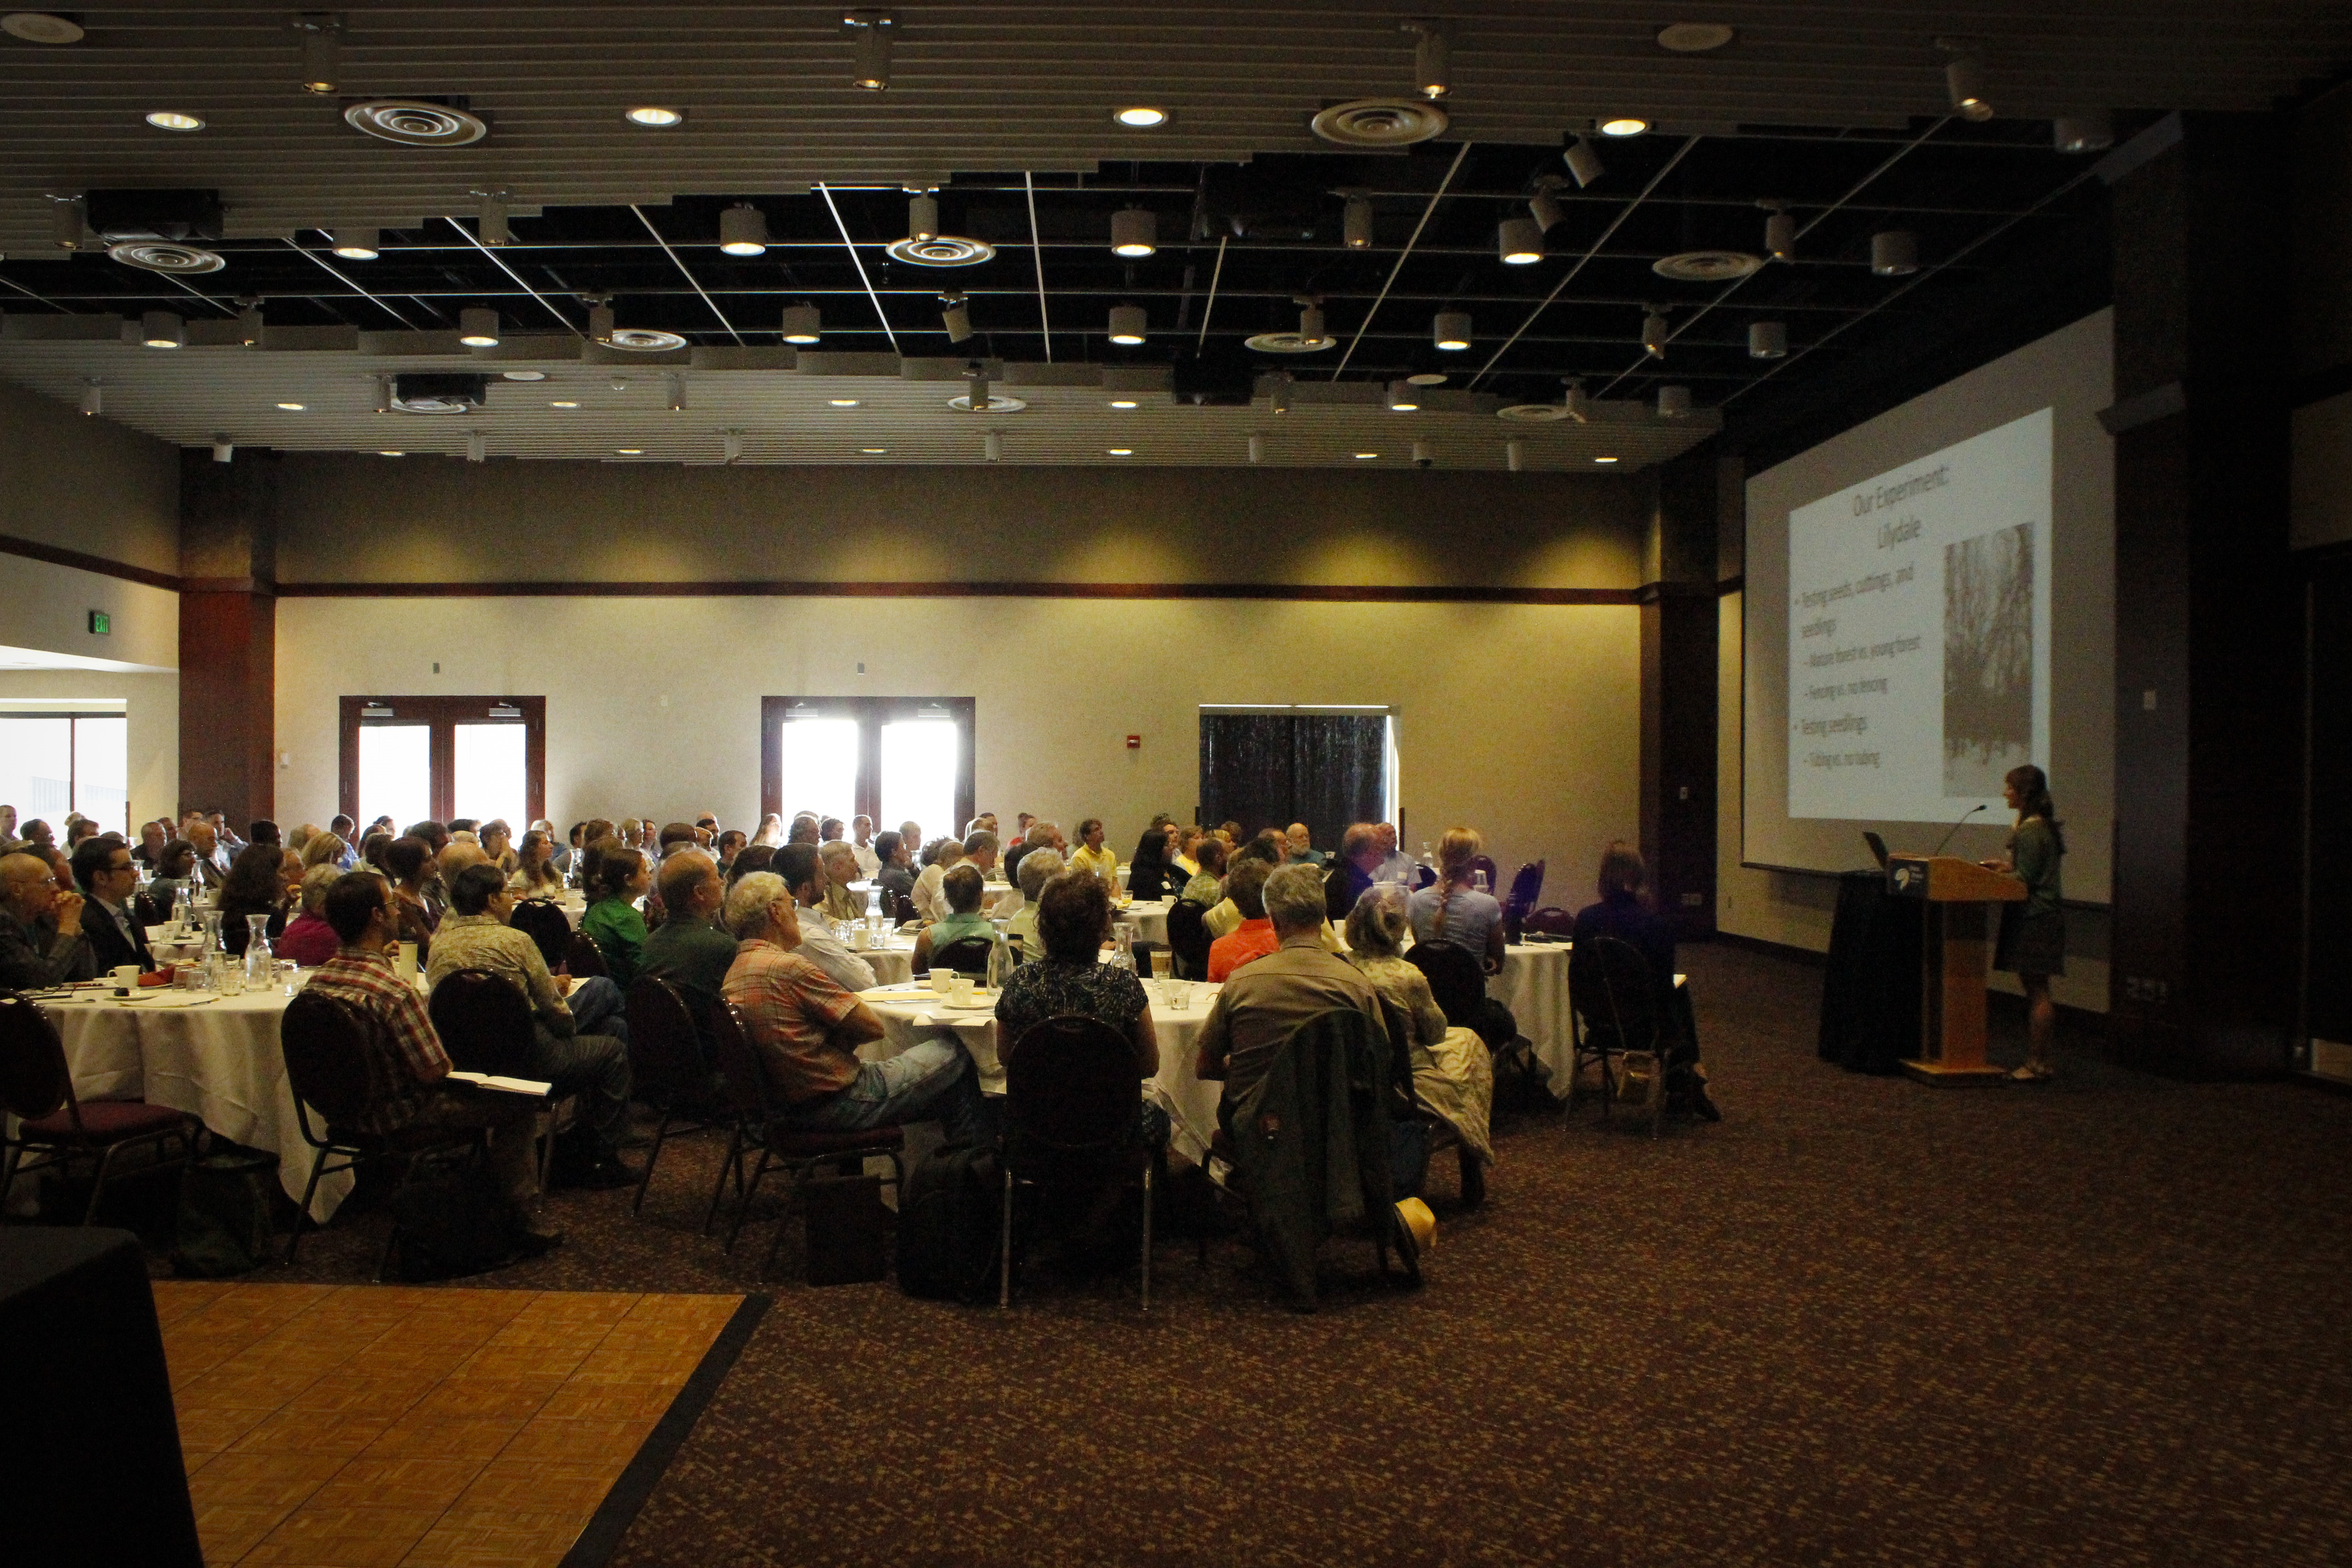 Maria DeLaundreau presents cottonwood research findings to the Mississippi River Forum audience. Photo by Melissa Buss, courtesy of the National Park Service.